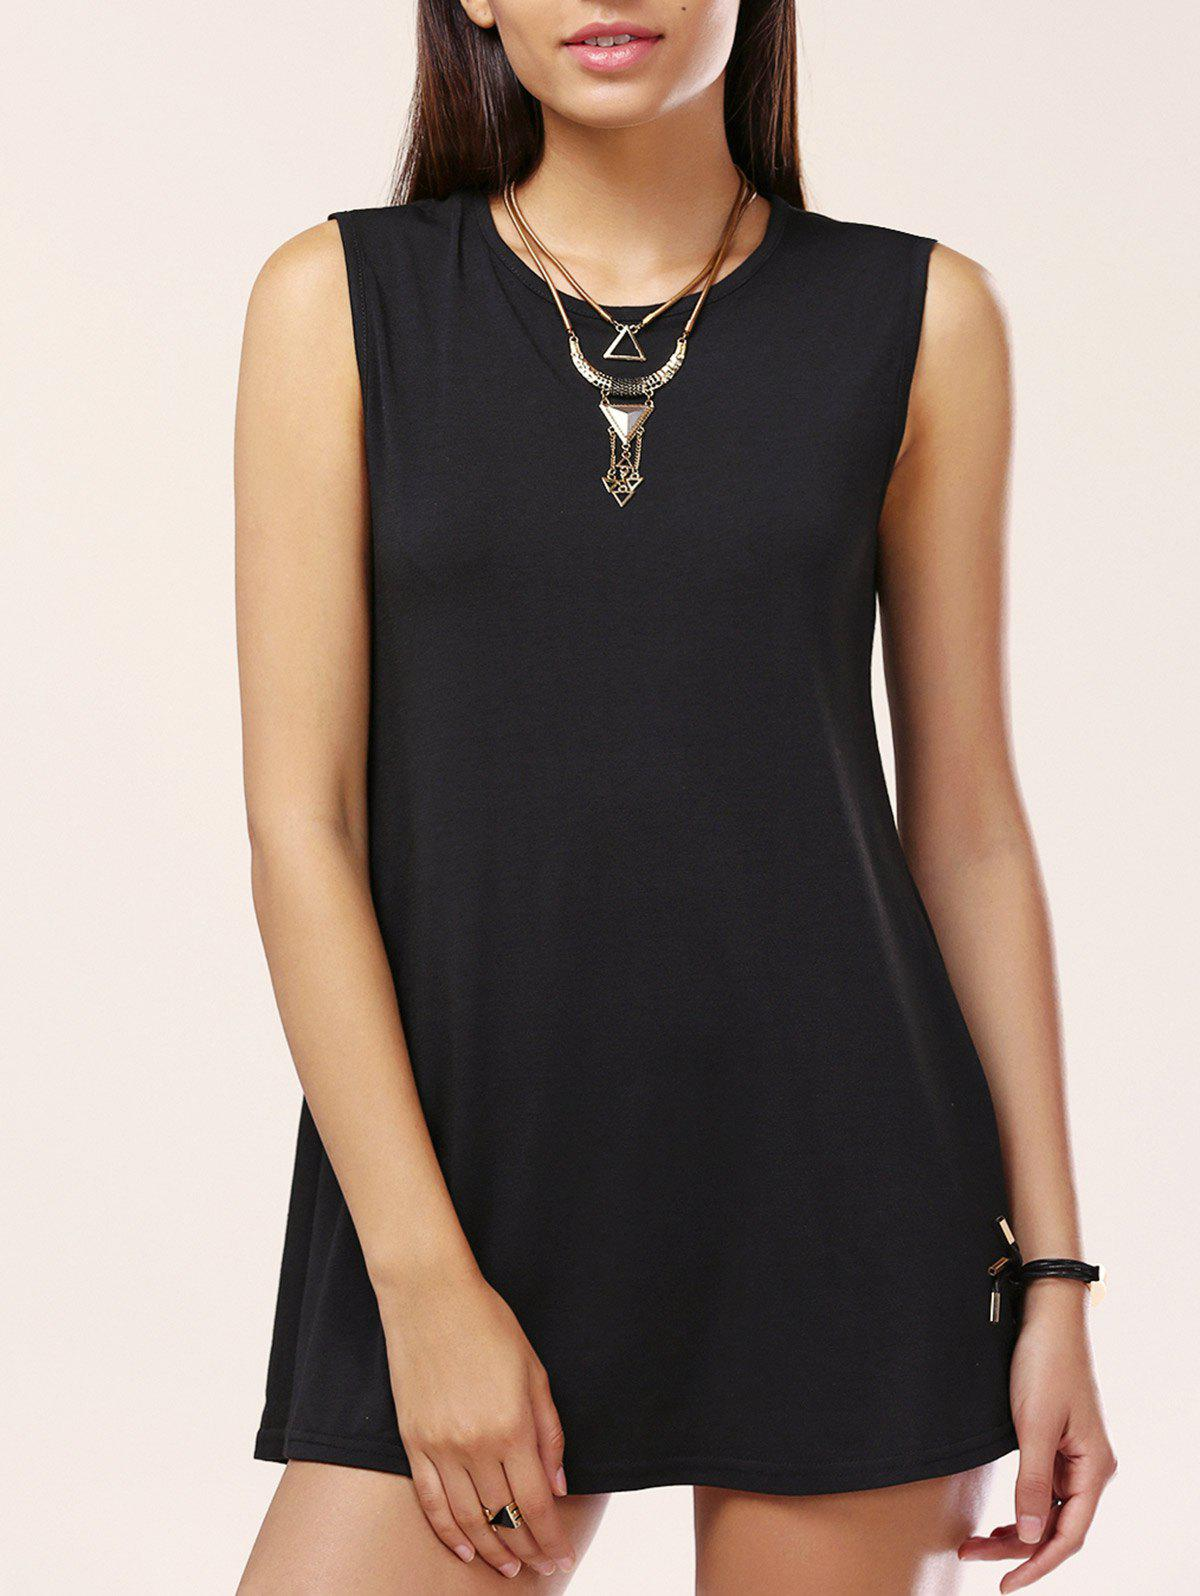 Brief Sleeveless Solid Color Women's Mini Dress